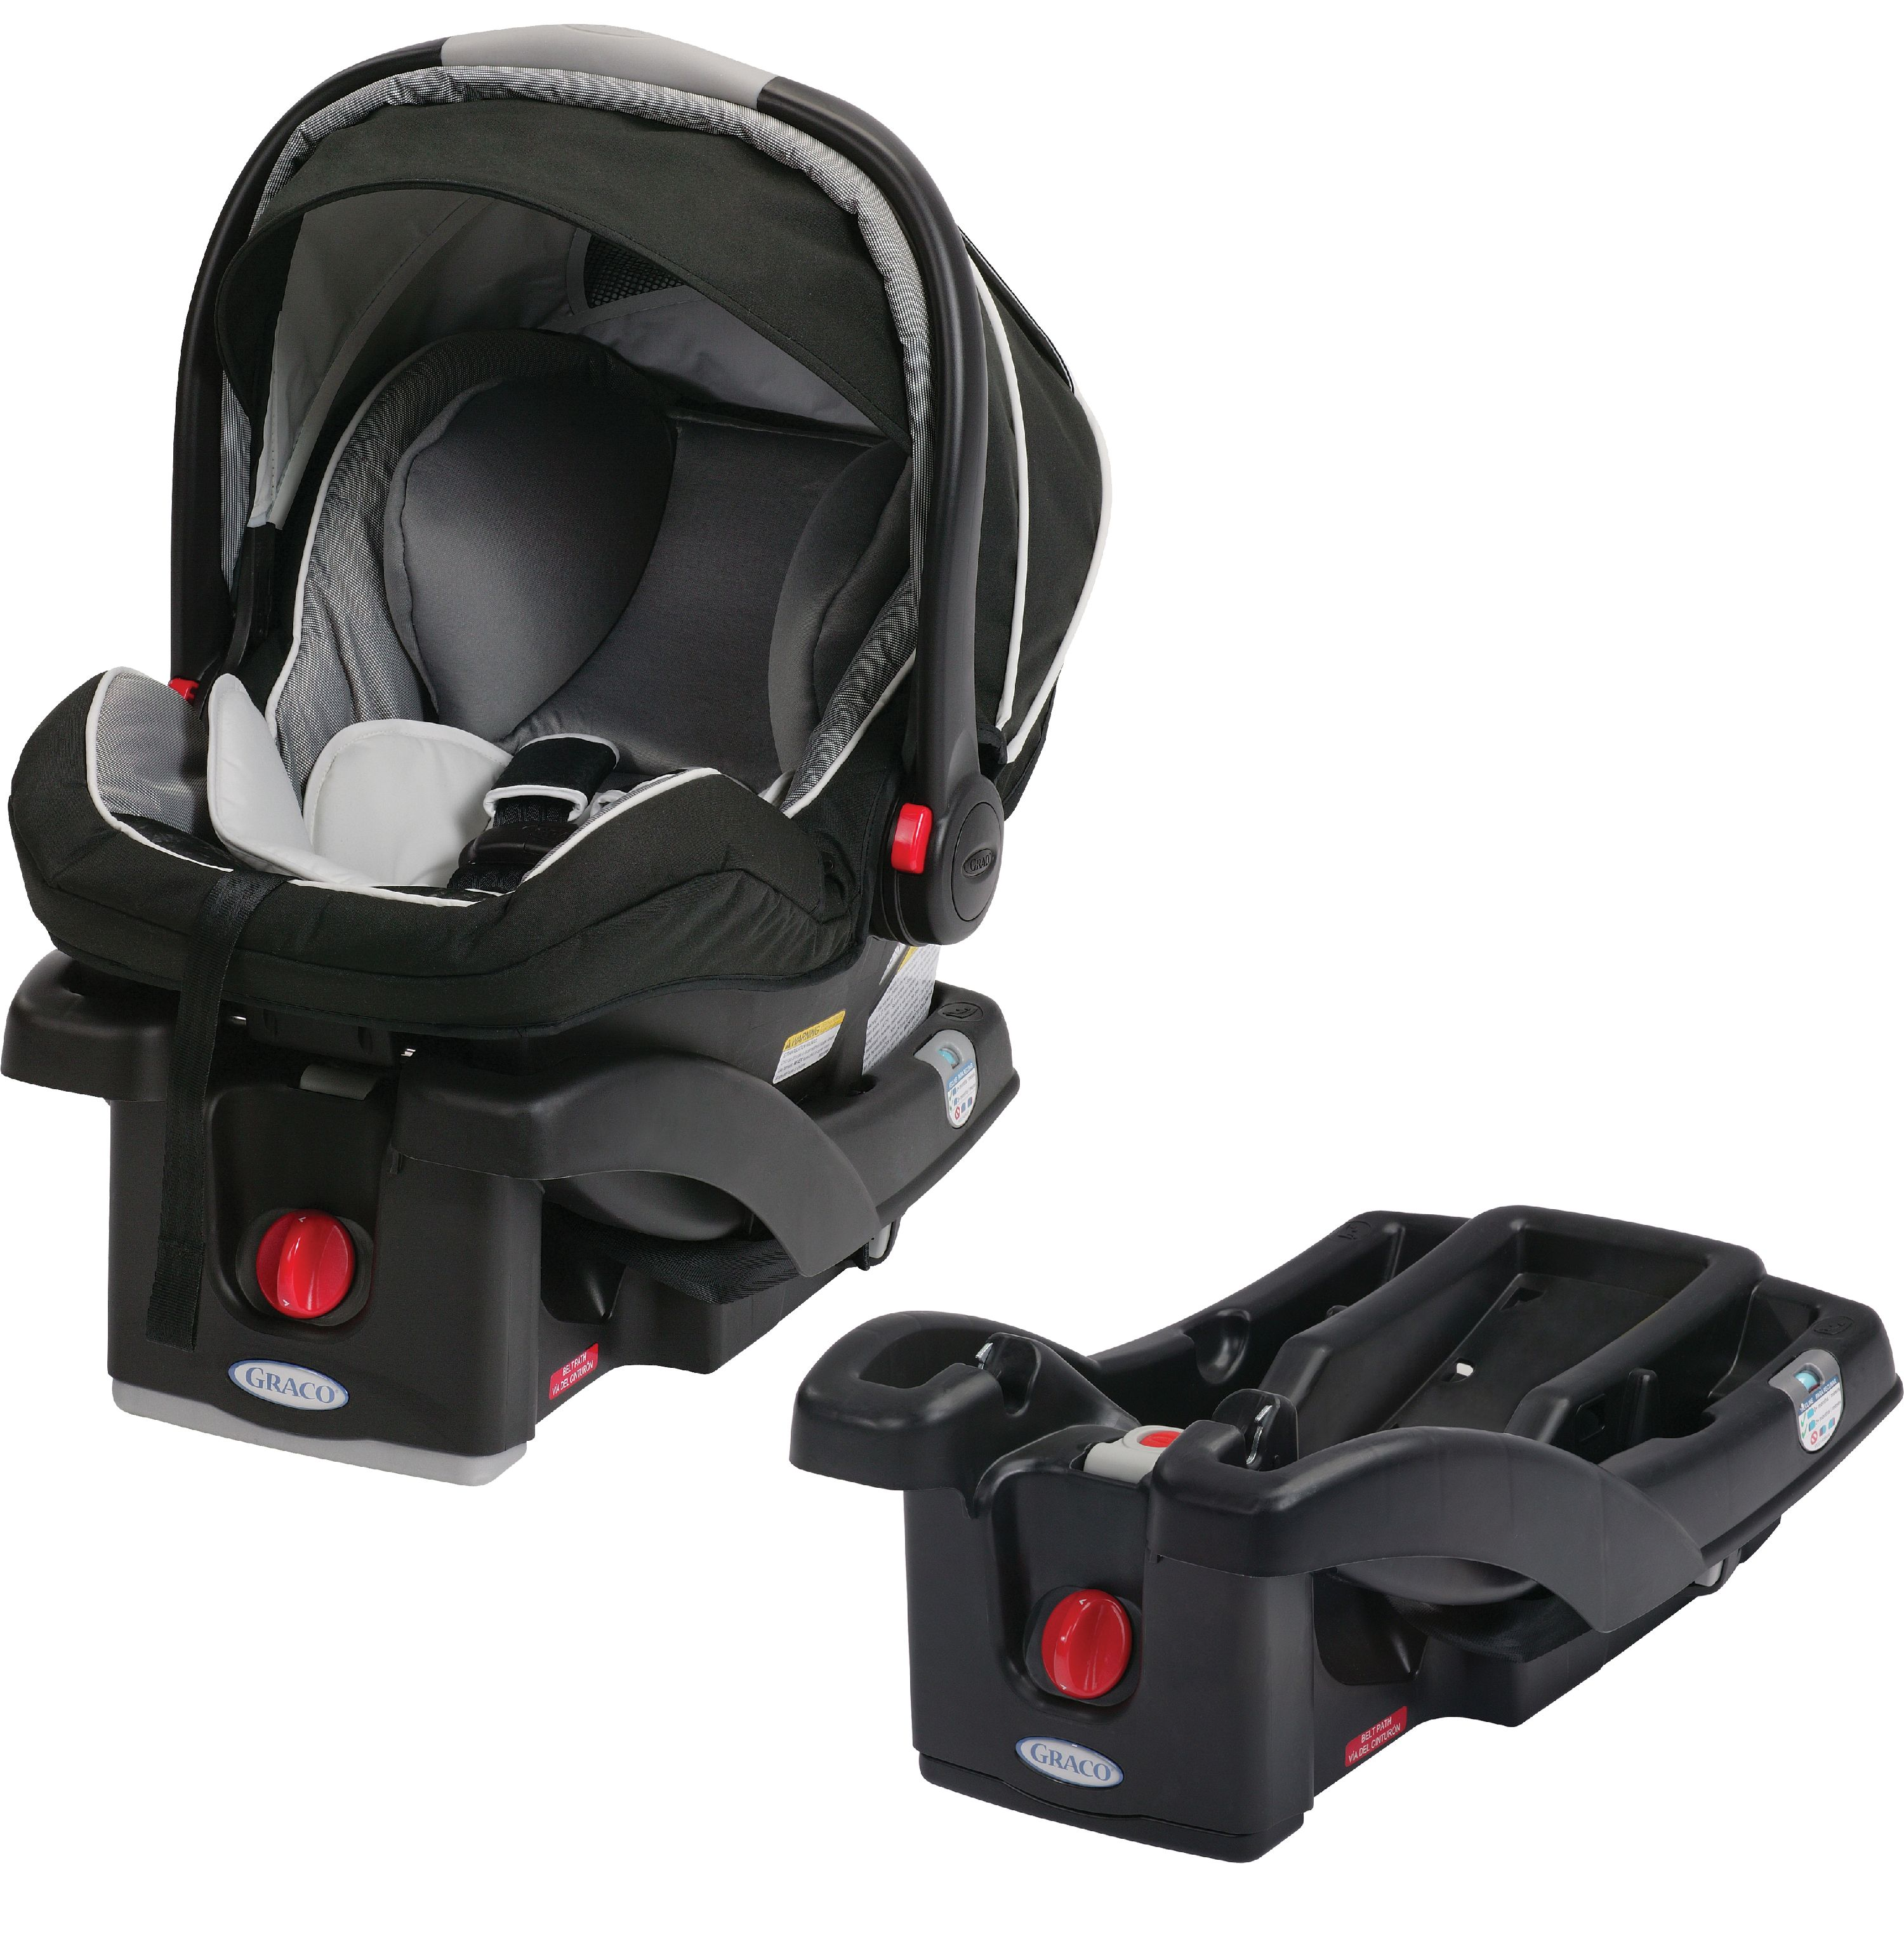 Graco SnugRide Click Connect 35 LX Infant Car Seat, Choose Your Color, AND SnugRider Stroller Frame